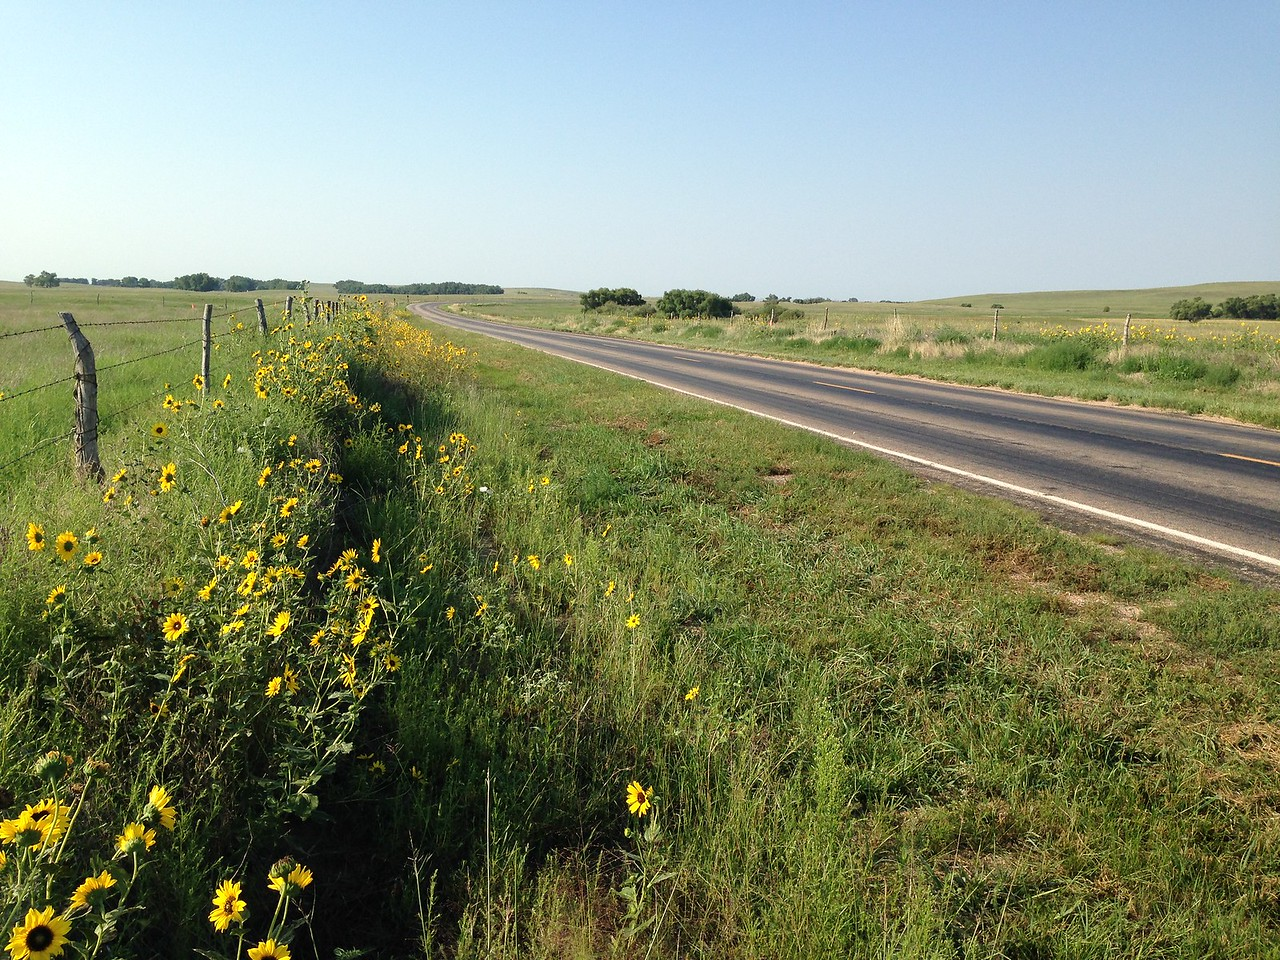 Heading across NE to Colorado. While most of NE is flat and green with corn, the western part of the state is unexpectedly lovely. These sunflowers are everywhere, and the roads get curvy and even a little hilly. It's very pretty and of course, there's no traffic.